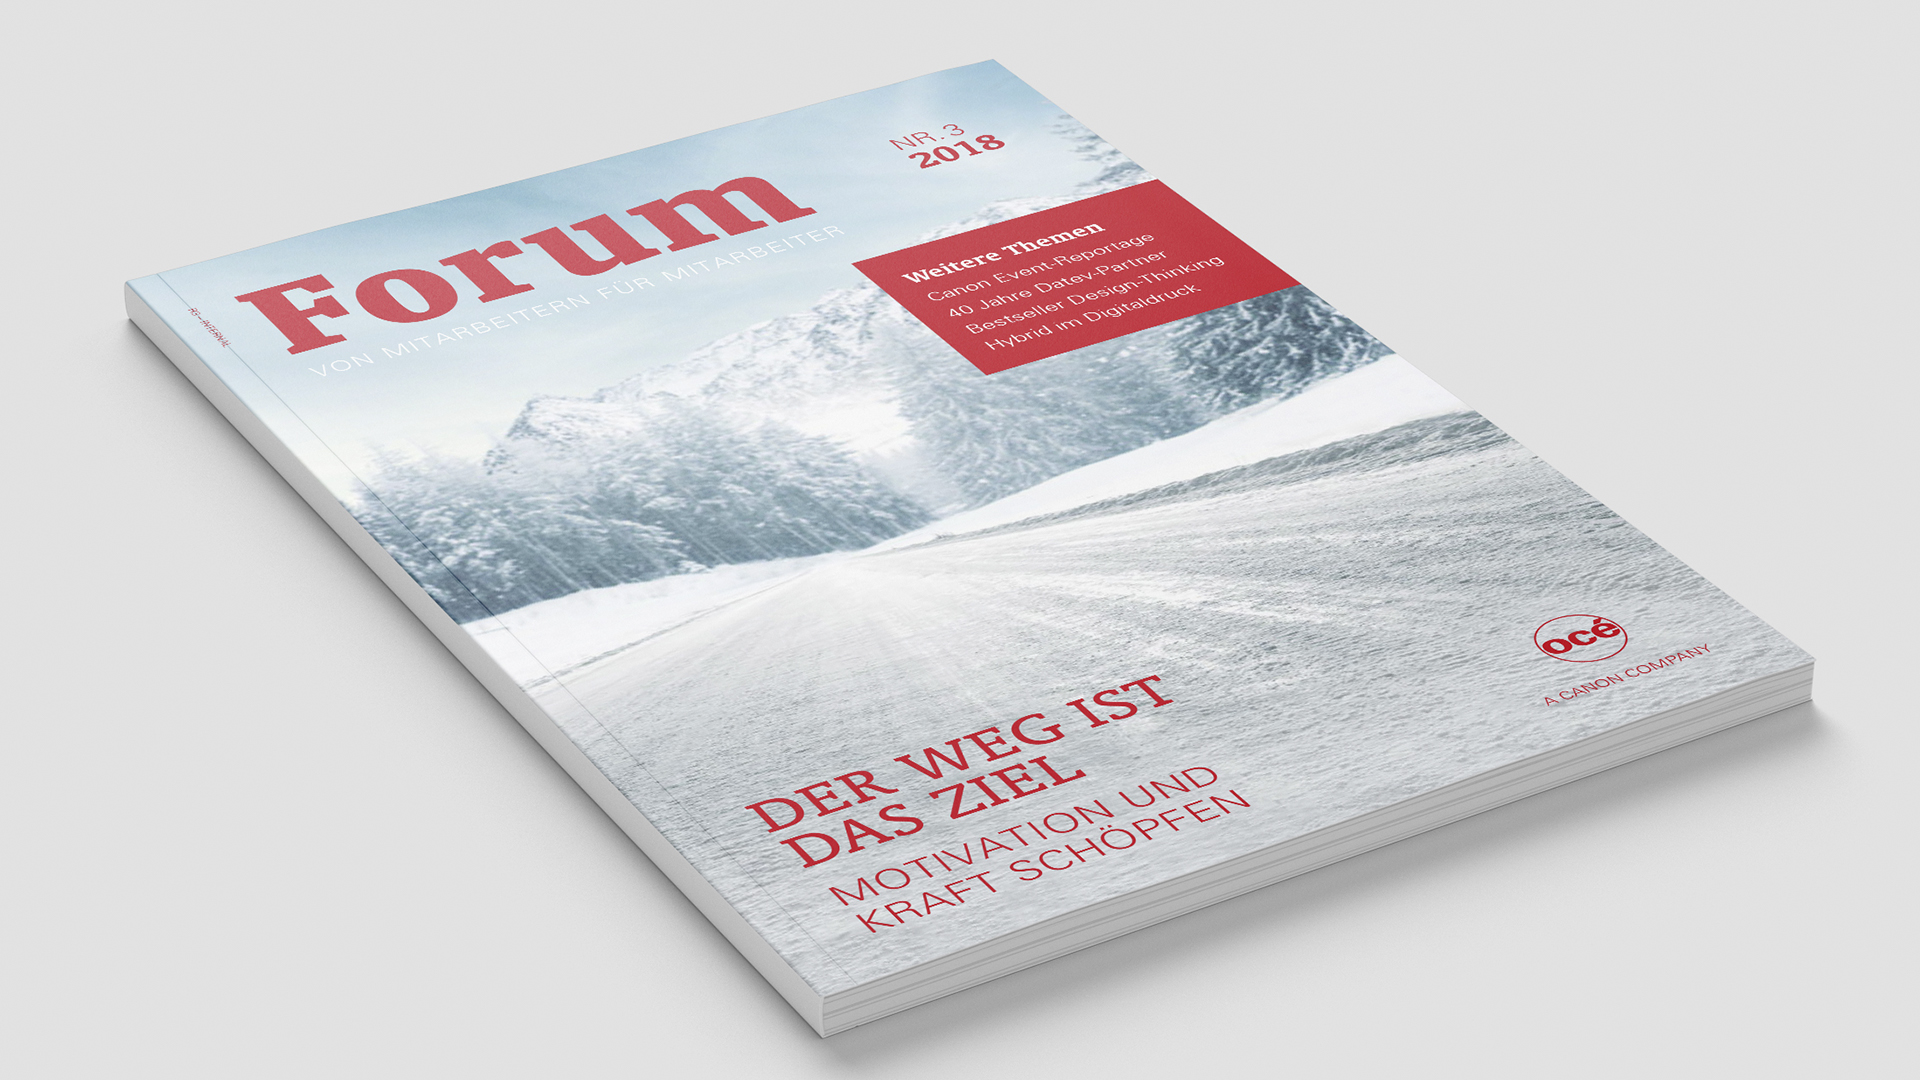 Océ Canon Corporate Publishing Relaunch Mitarbeitermagazin